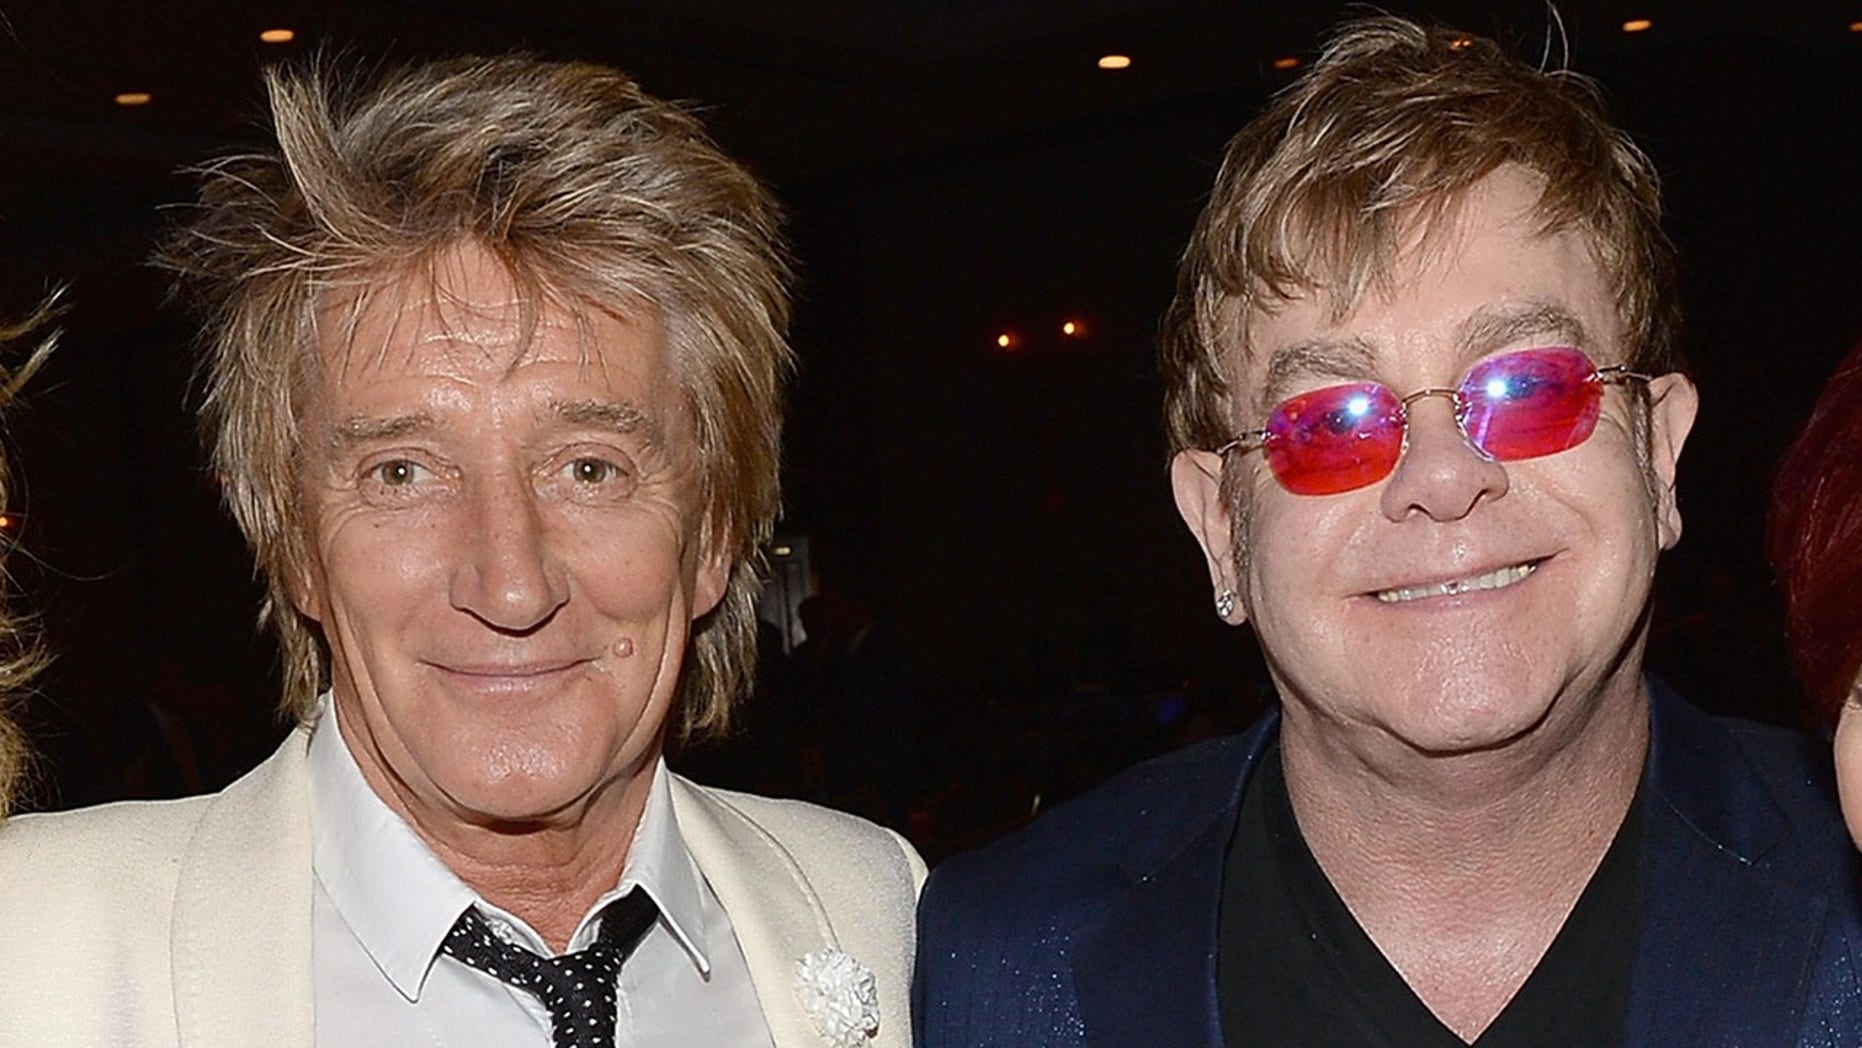 Rod Stewart (left) said he feels that Elton John's retirement tour is a ploy to sell tickets.